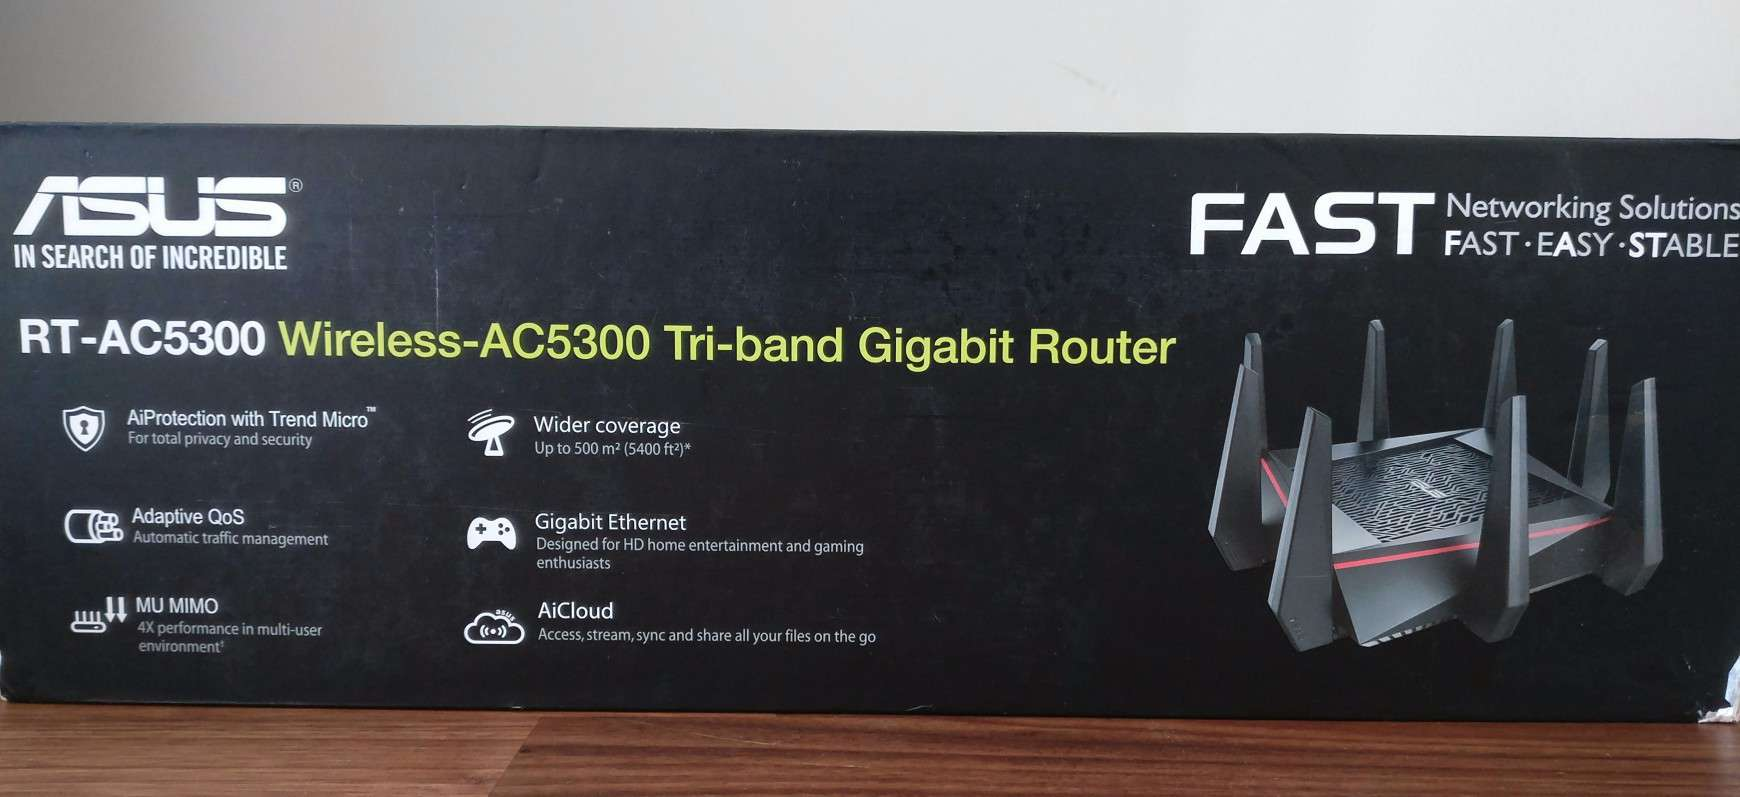 Asus-Router-Photos06 Asus RT-AC5300 Router Review